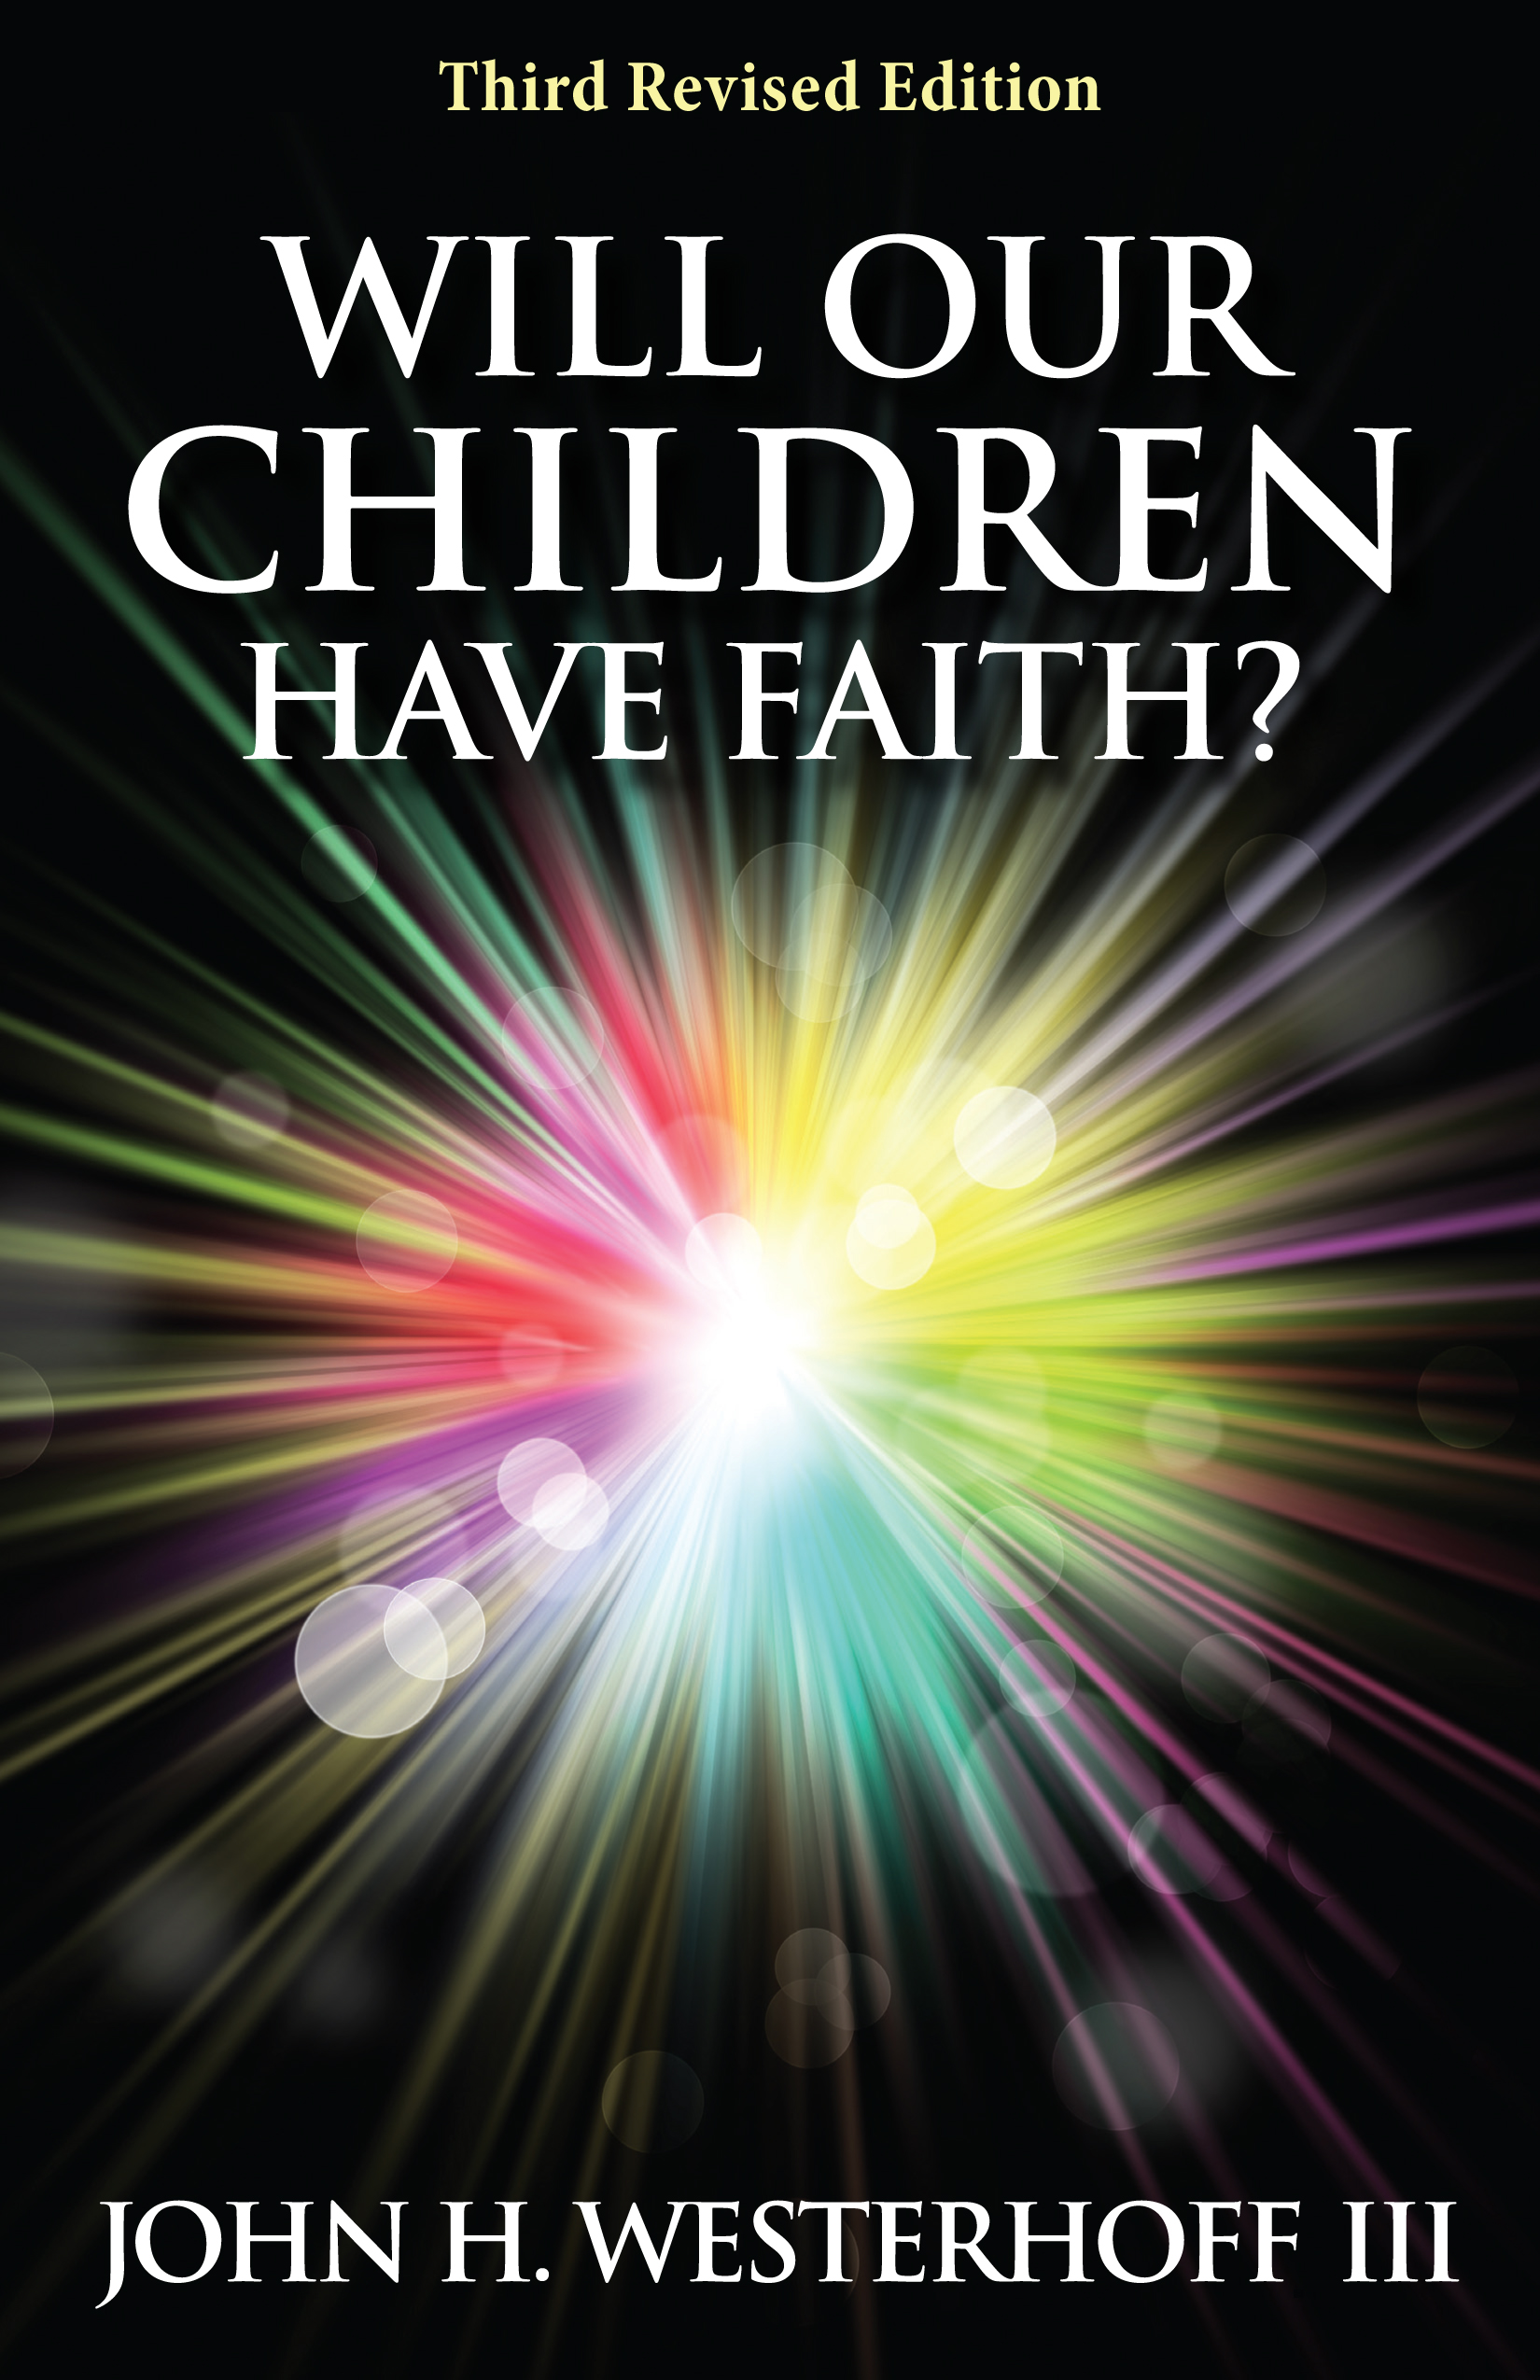 Church counseling guide ebook the premarital counseling handbook array churchpublishing org will our children have faith rh churchpublishing fandeluxe Choice Image